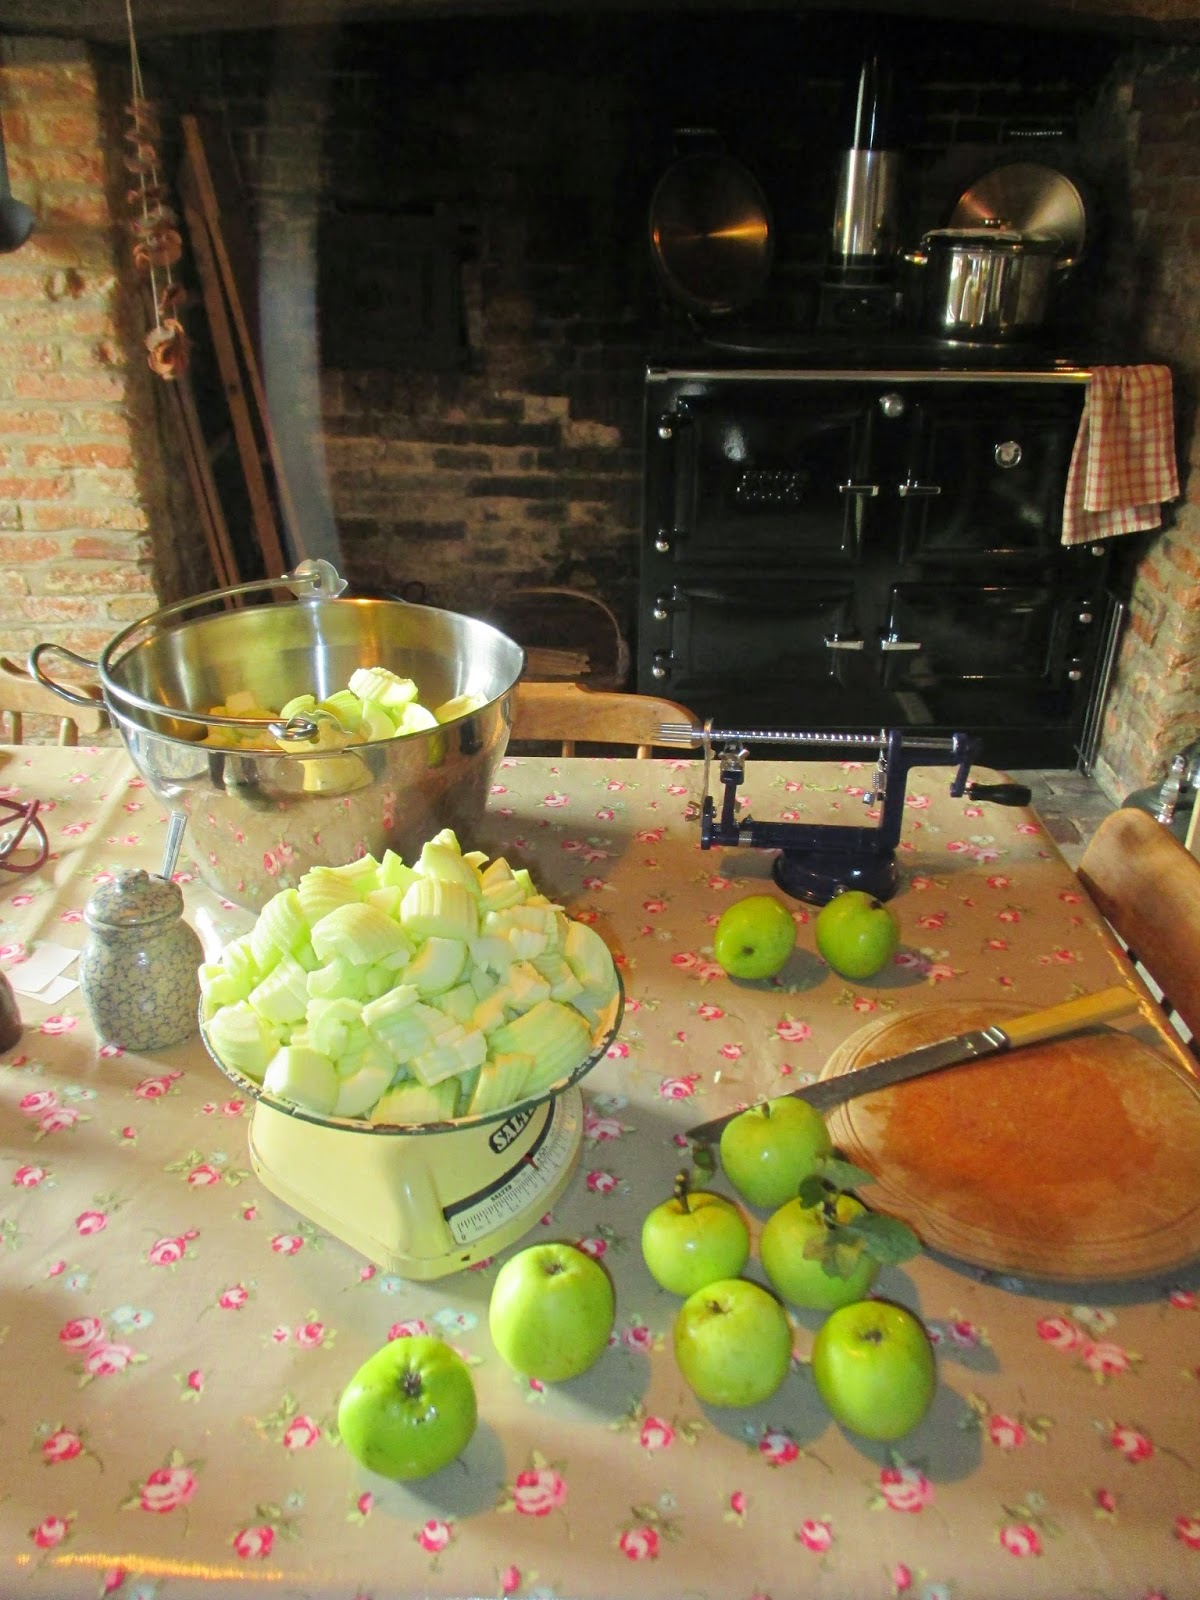 Ruth Mott Victorian Kitchen Remembering The Old Ways 2014 08 17